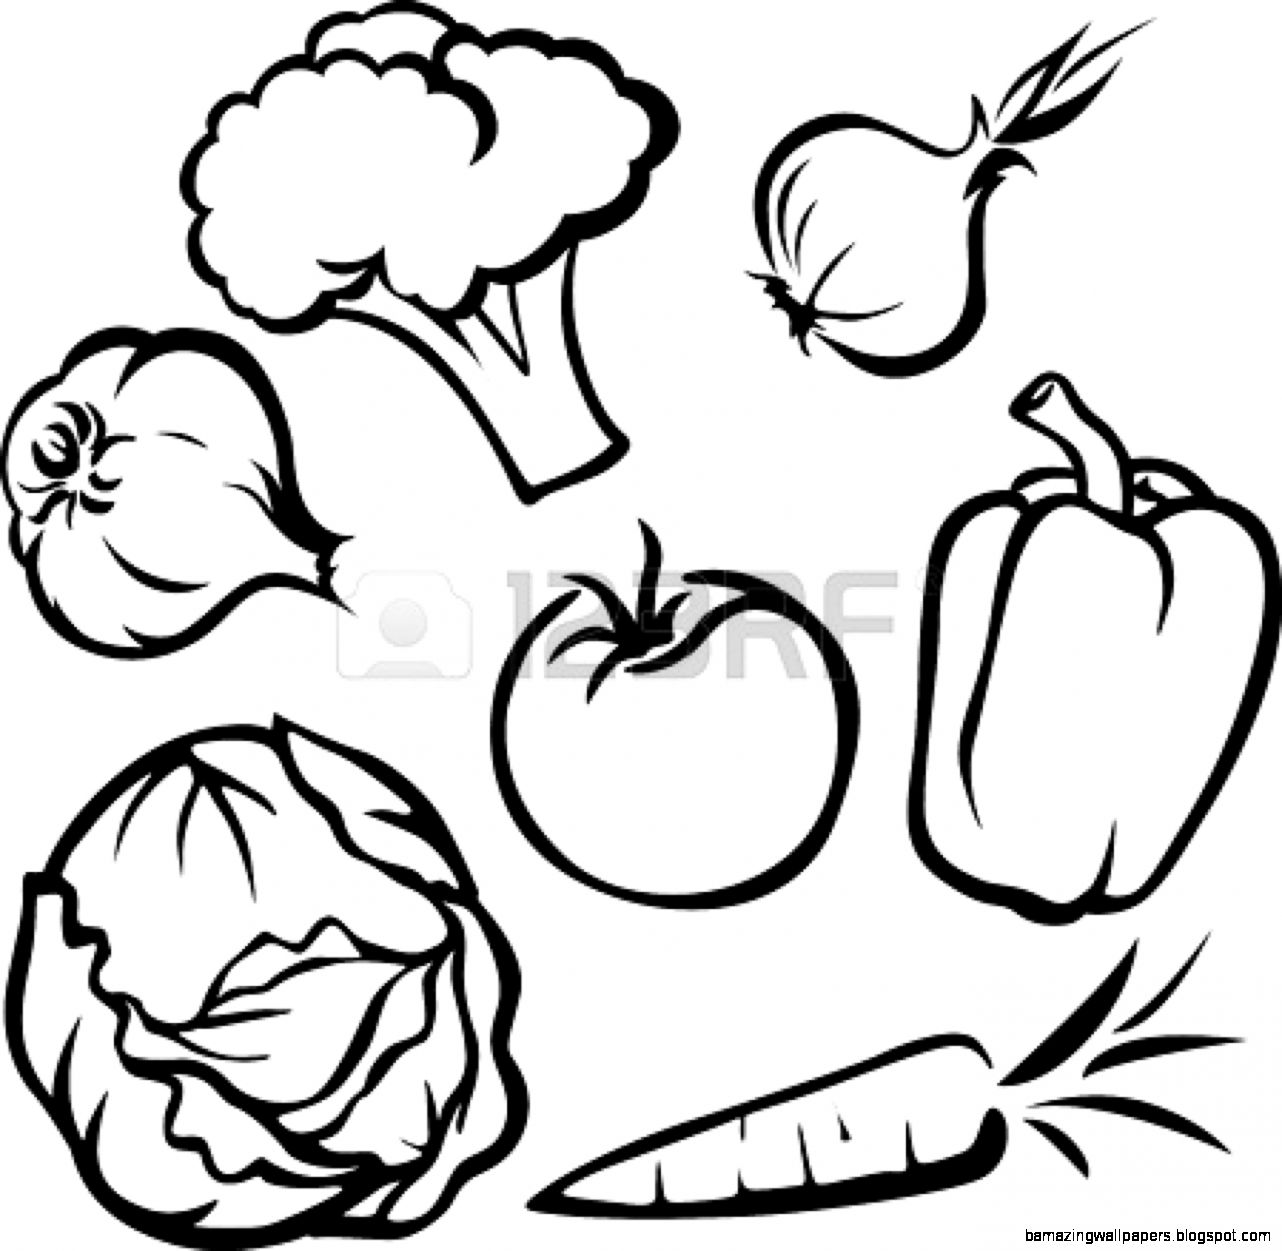 Coloring Fruits And Vegetables Clipart Black And White.